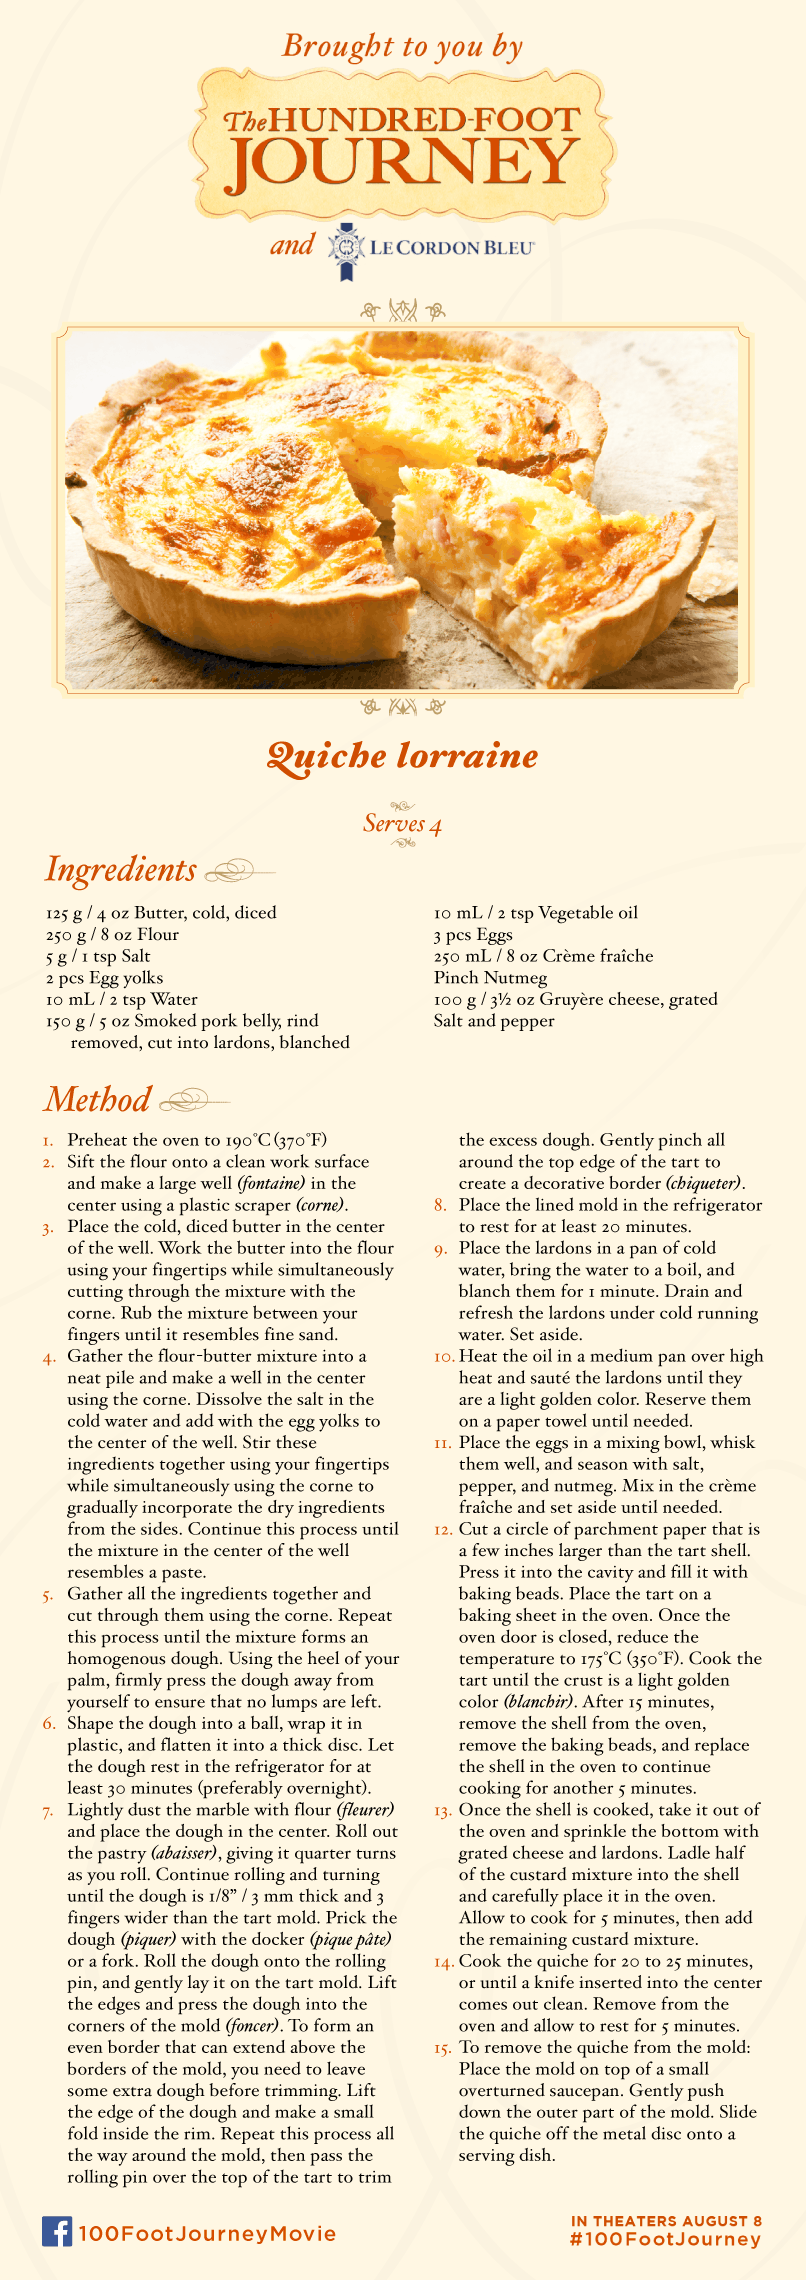 Quiche Lorraine recipe, 100 Foot Journey Recipes